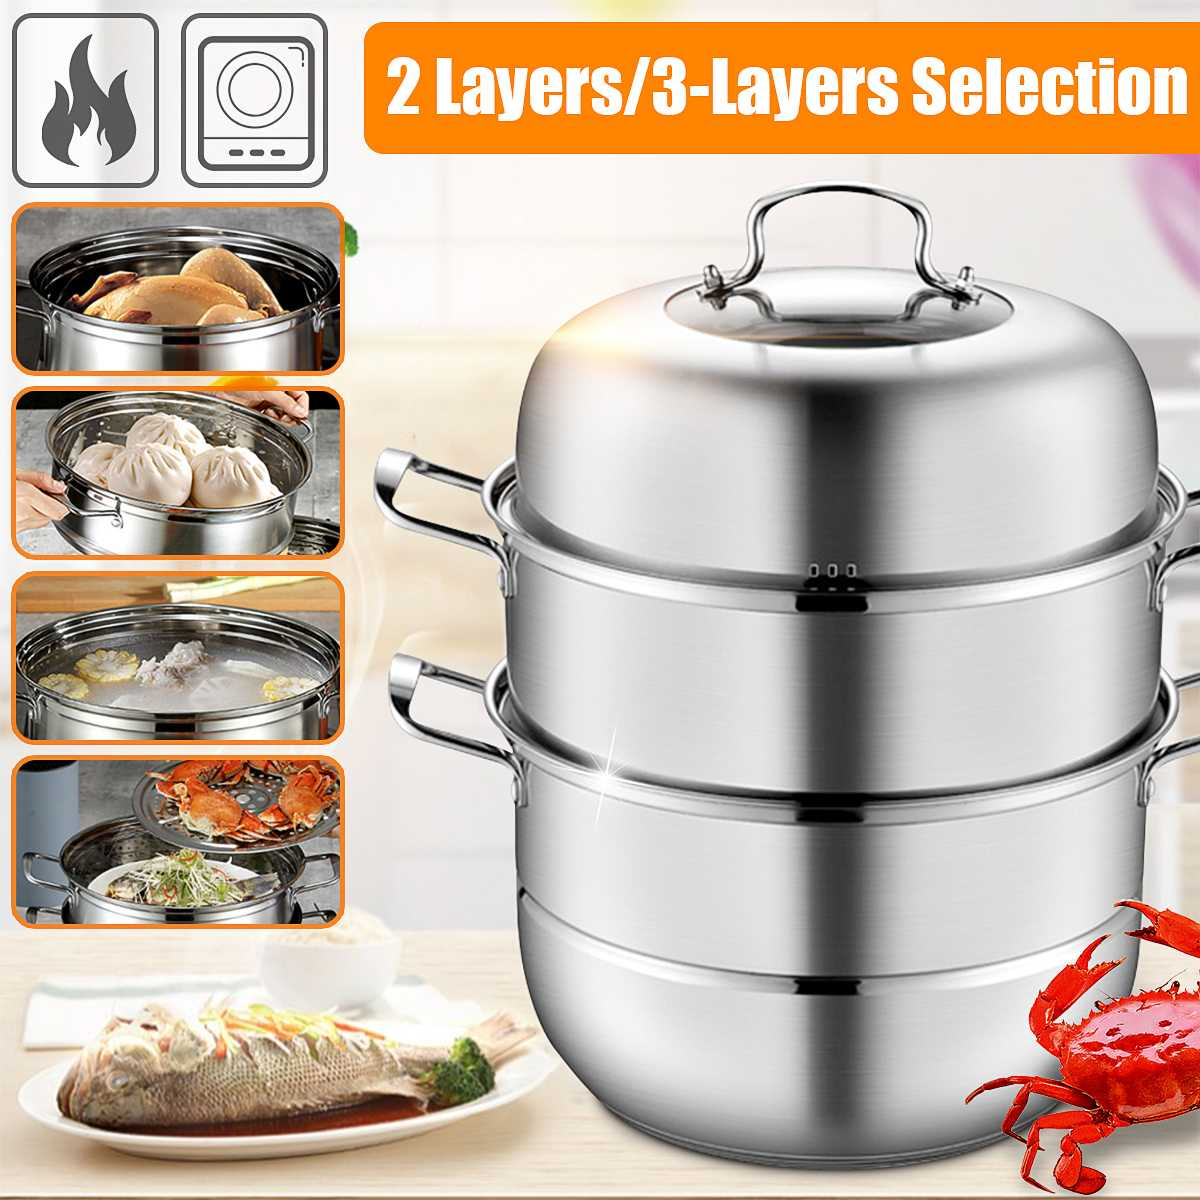 28cm Boiler Soup Pot Stainless Steel Two Three Layer Thick Steamer Pot Universal Cooking Pots for Induction Cooker Gas Stove